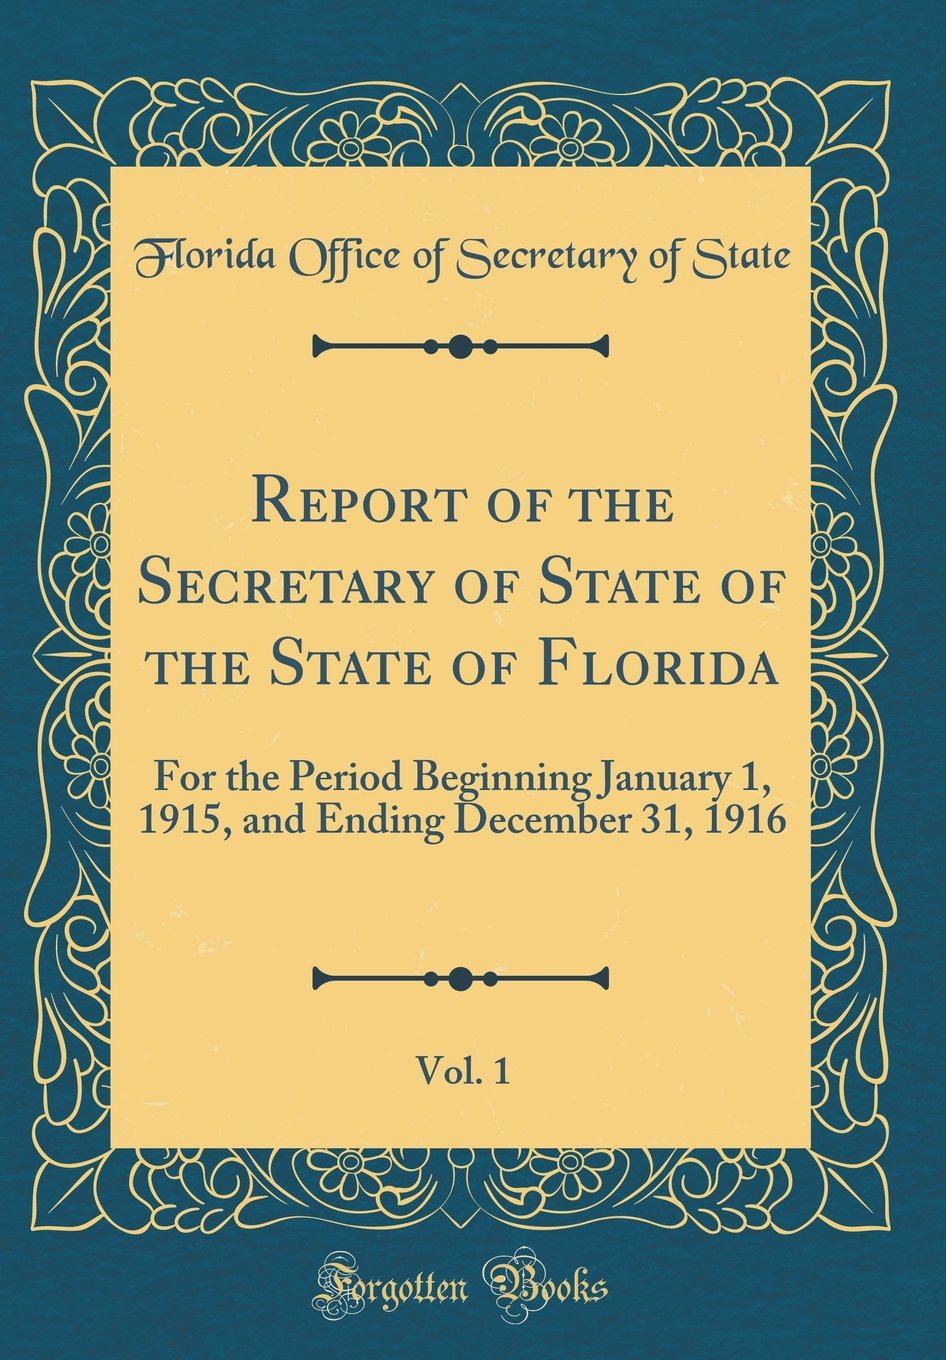 Download Report of the Secretary of State of the State of Florida, Vol. 1: For the Period Beginning January 1, 1915, and Ending December 31, 1916 (Classic Reprint) pdf